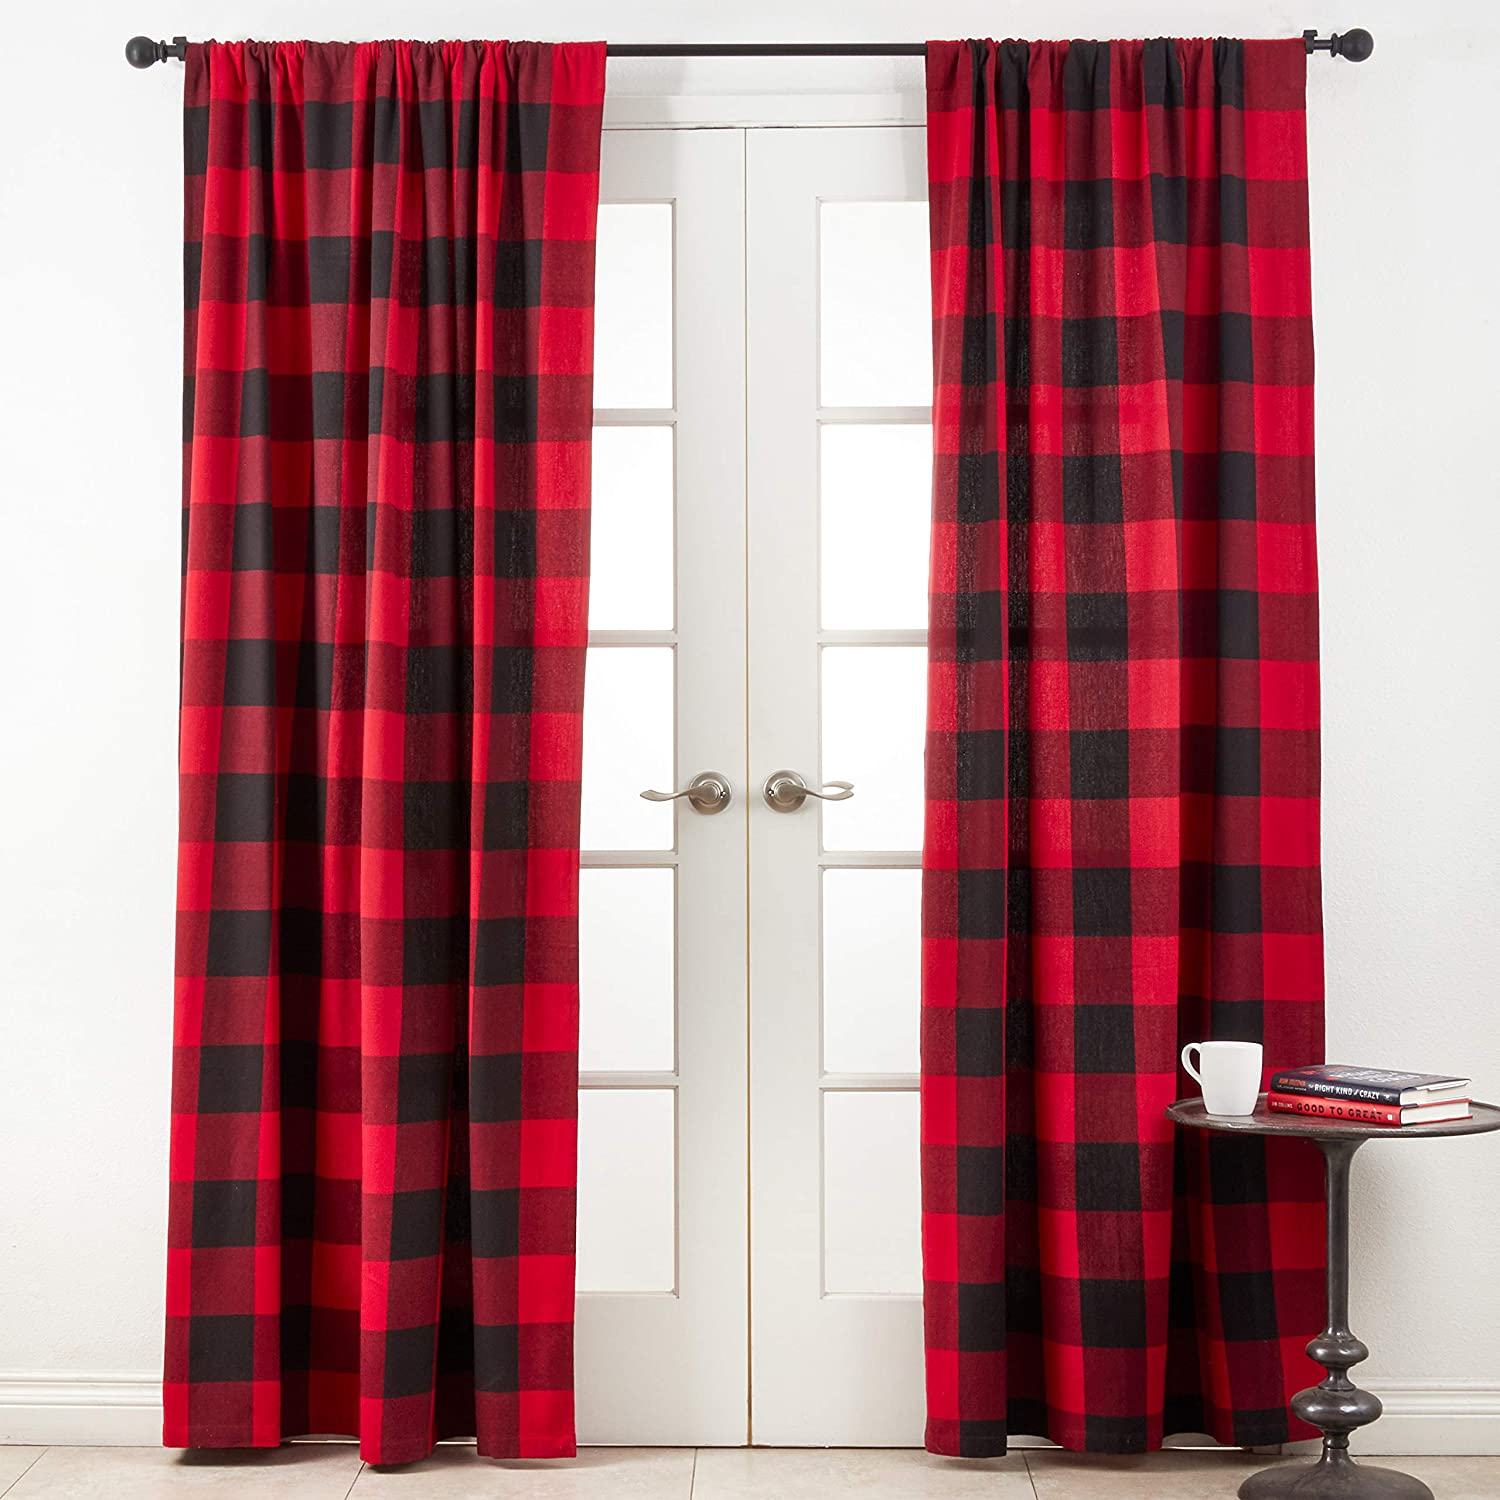 SARO LIFESTYLE Birmingham Collection Buffalo Plaid Cotton Curtains, 54  x 96 , Red